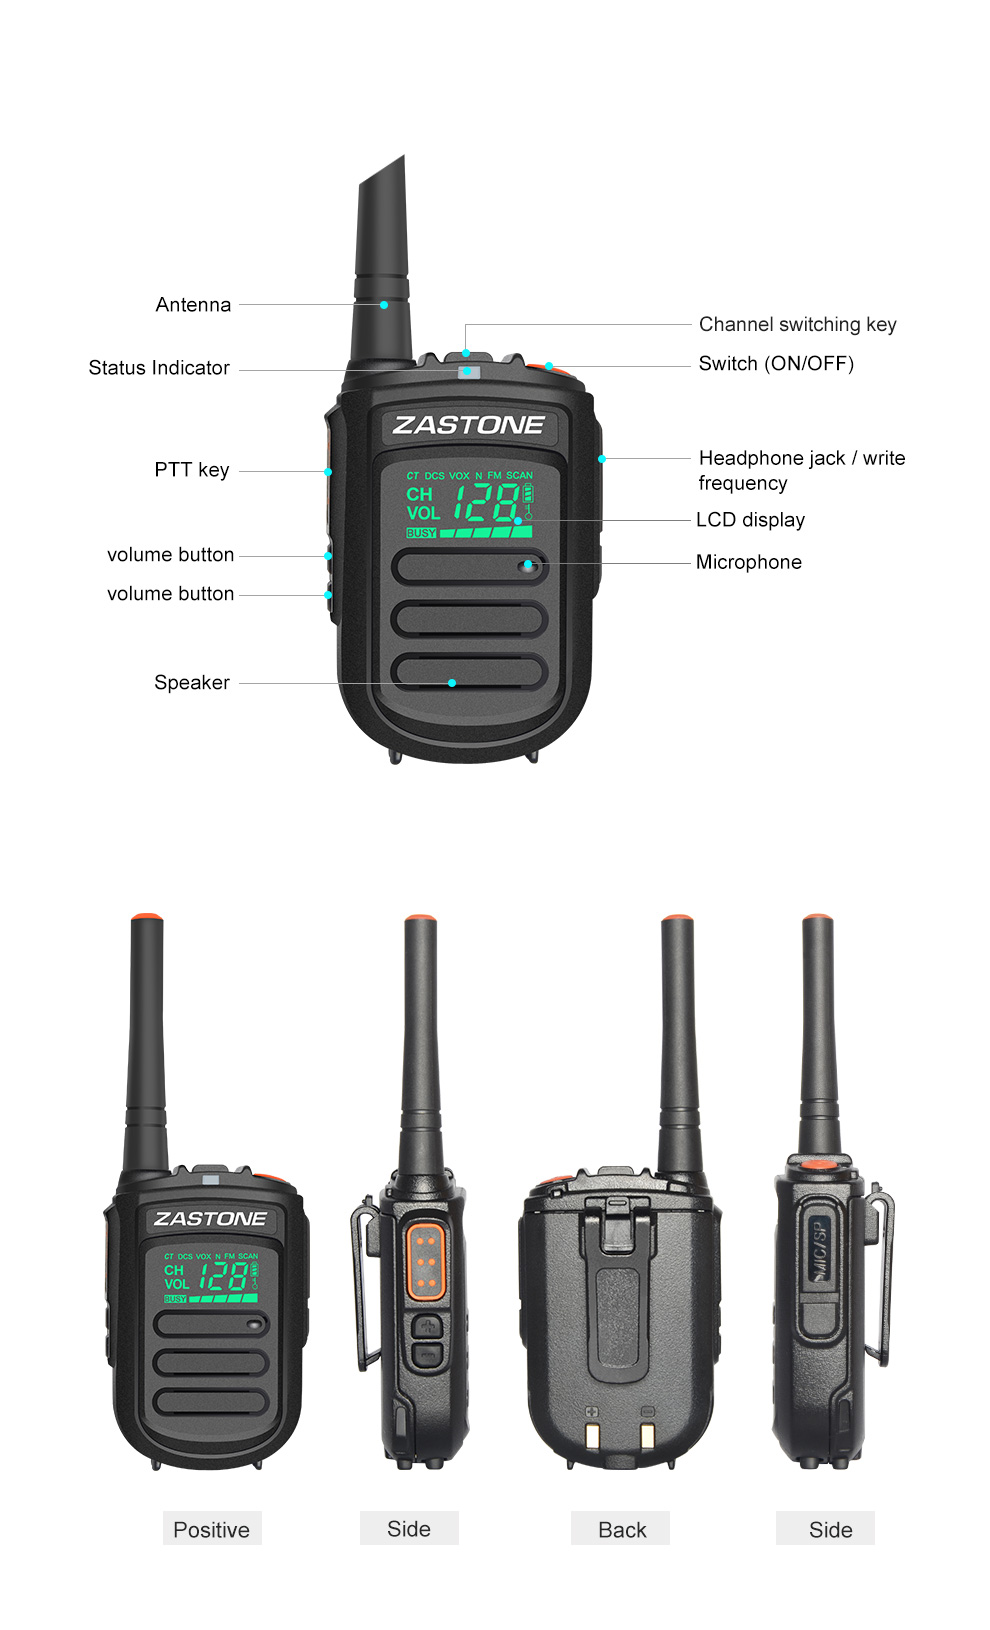 ZASTONE mini9 new released portable handheld 1500mhz 128ch VHF or UHF mini 2W slim walkie talkie